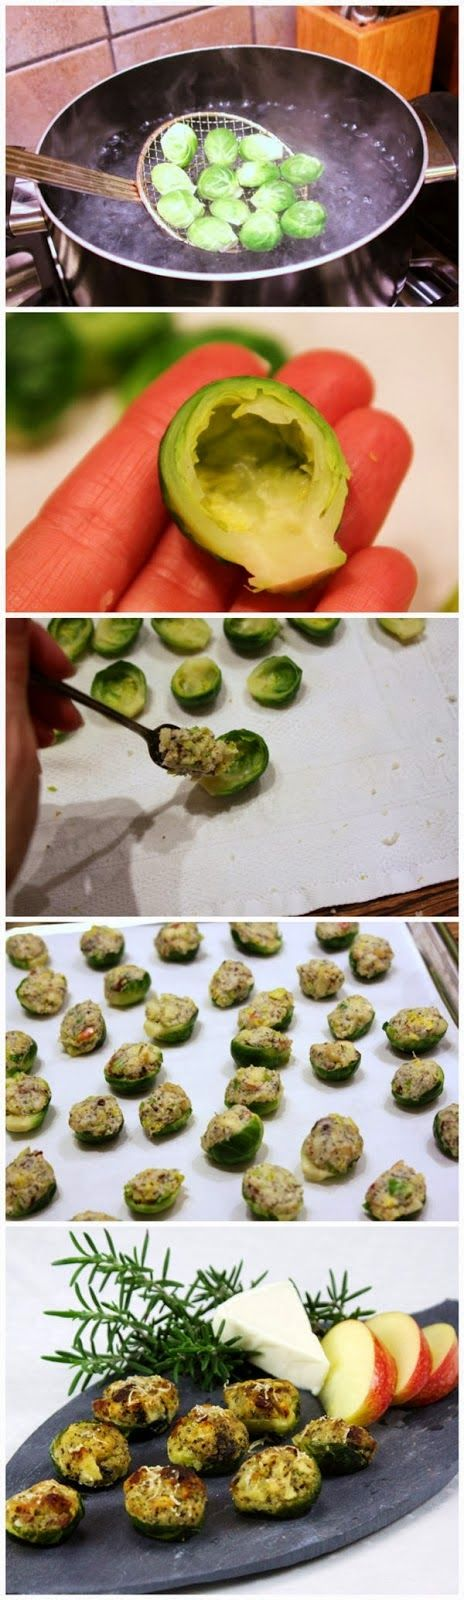 Apple and Bacon Stuffed Brussels Sprouts | Food Blog